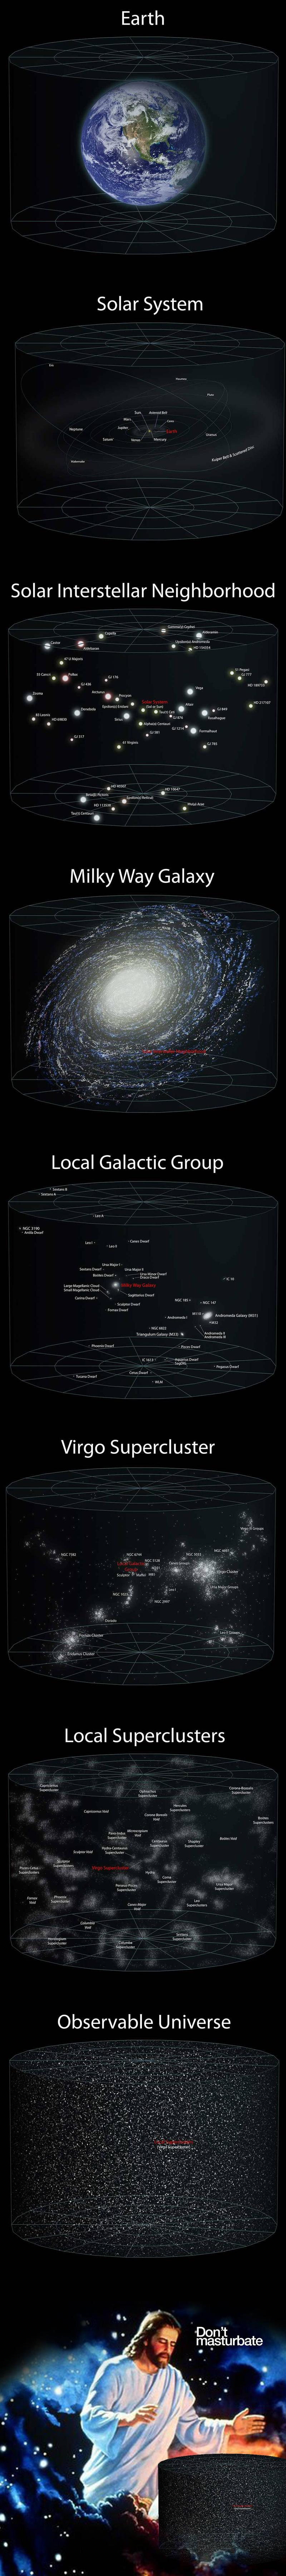 "[A very long image showing increasing scale, starting with Earth, then the solar system, then local stellar neighbourhood, galaxy, galactic group, Virgo supercluster, local superclusters, the observable universe... then at a scale greater than even that, Jesus looking down on everything, saying ""don't masturbate"".]"